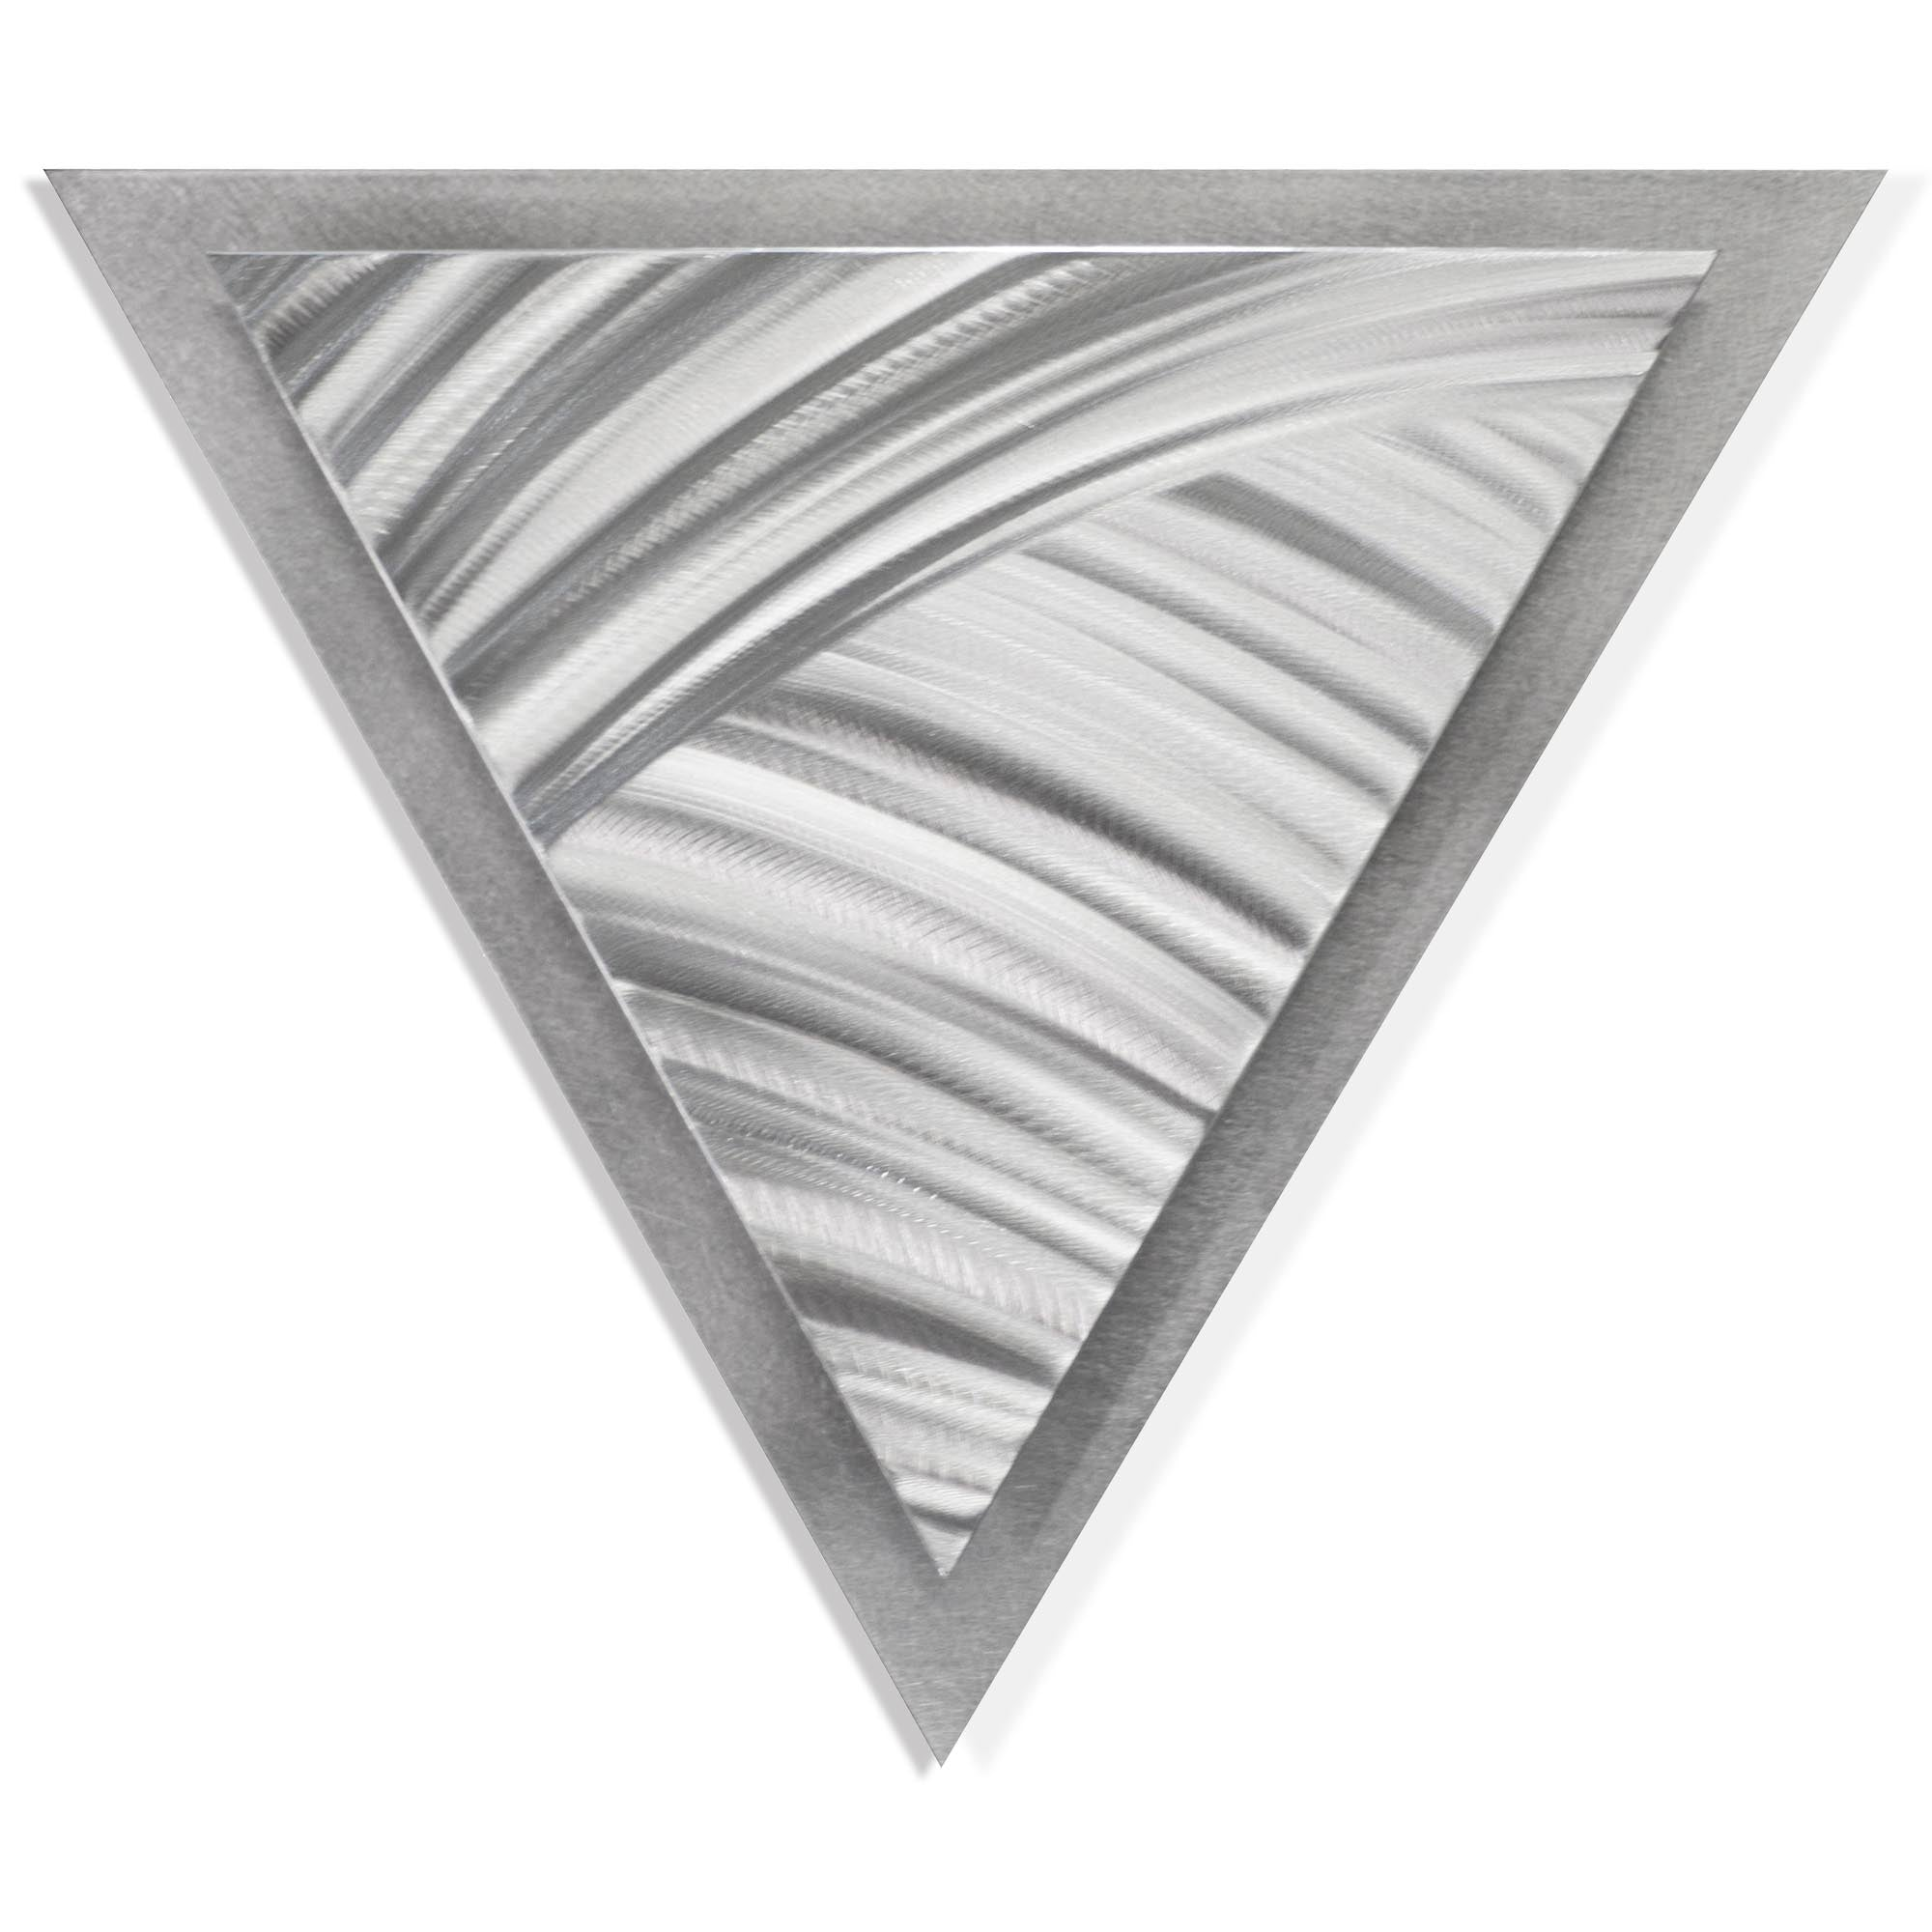 Folded Angle by Helena Martin - Modern Metal Art on Ground Metal